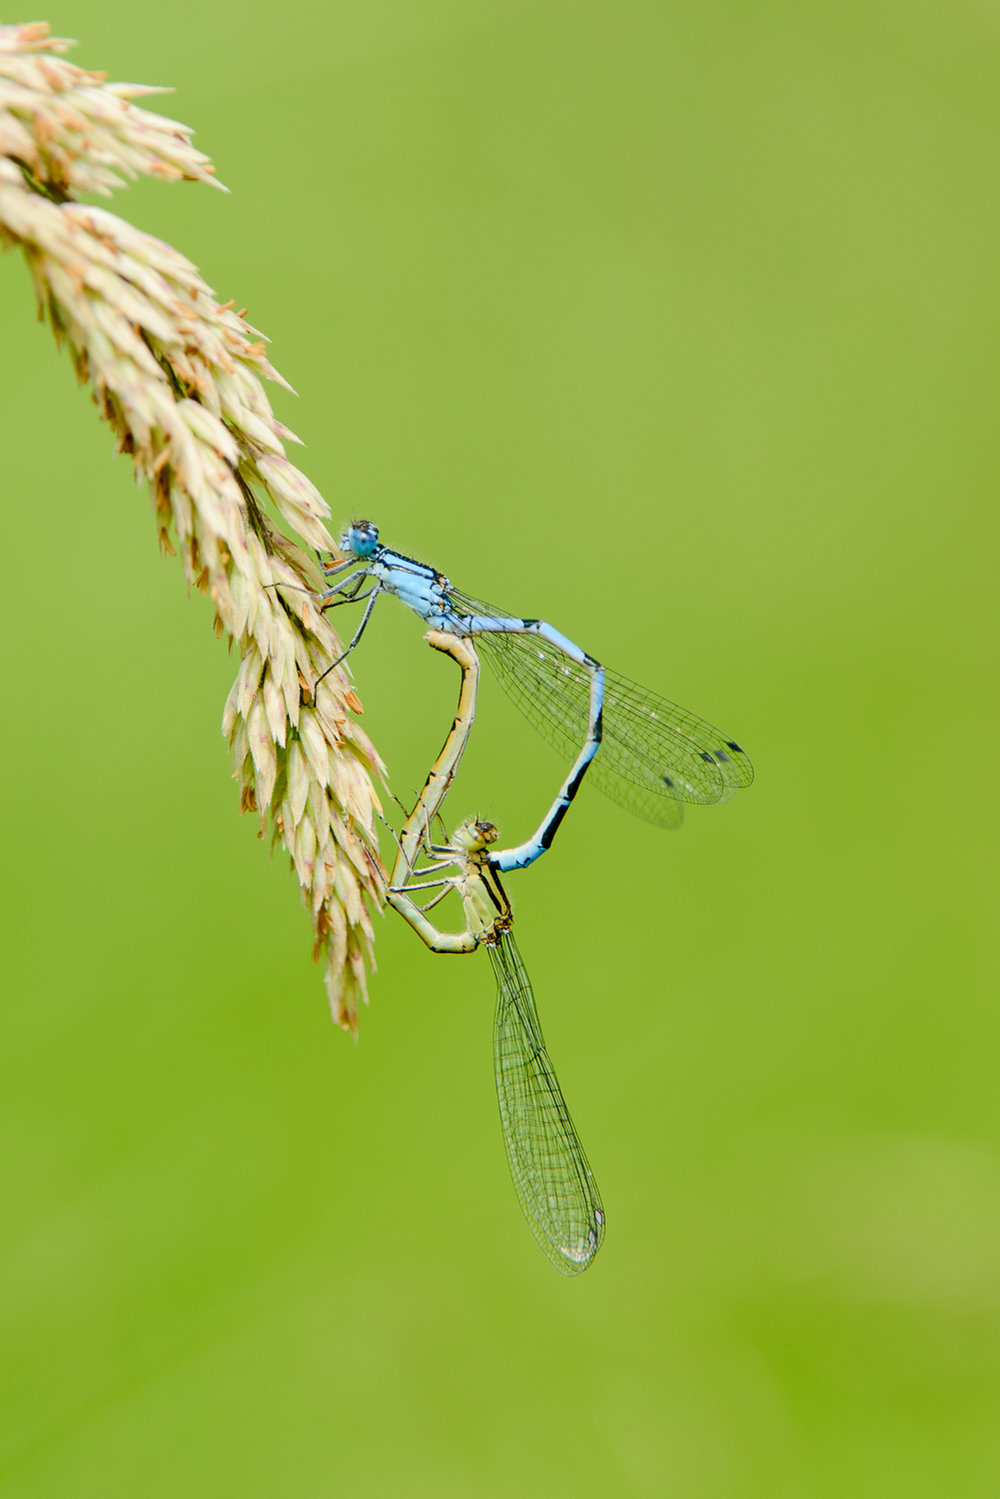 Common Blue Damselflies